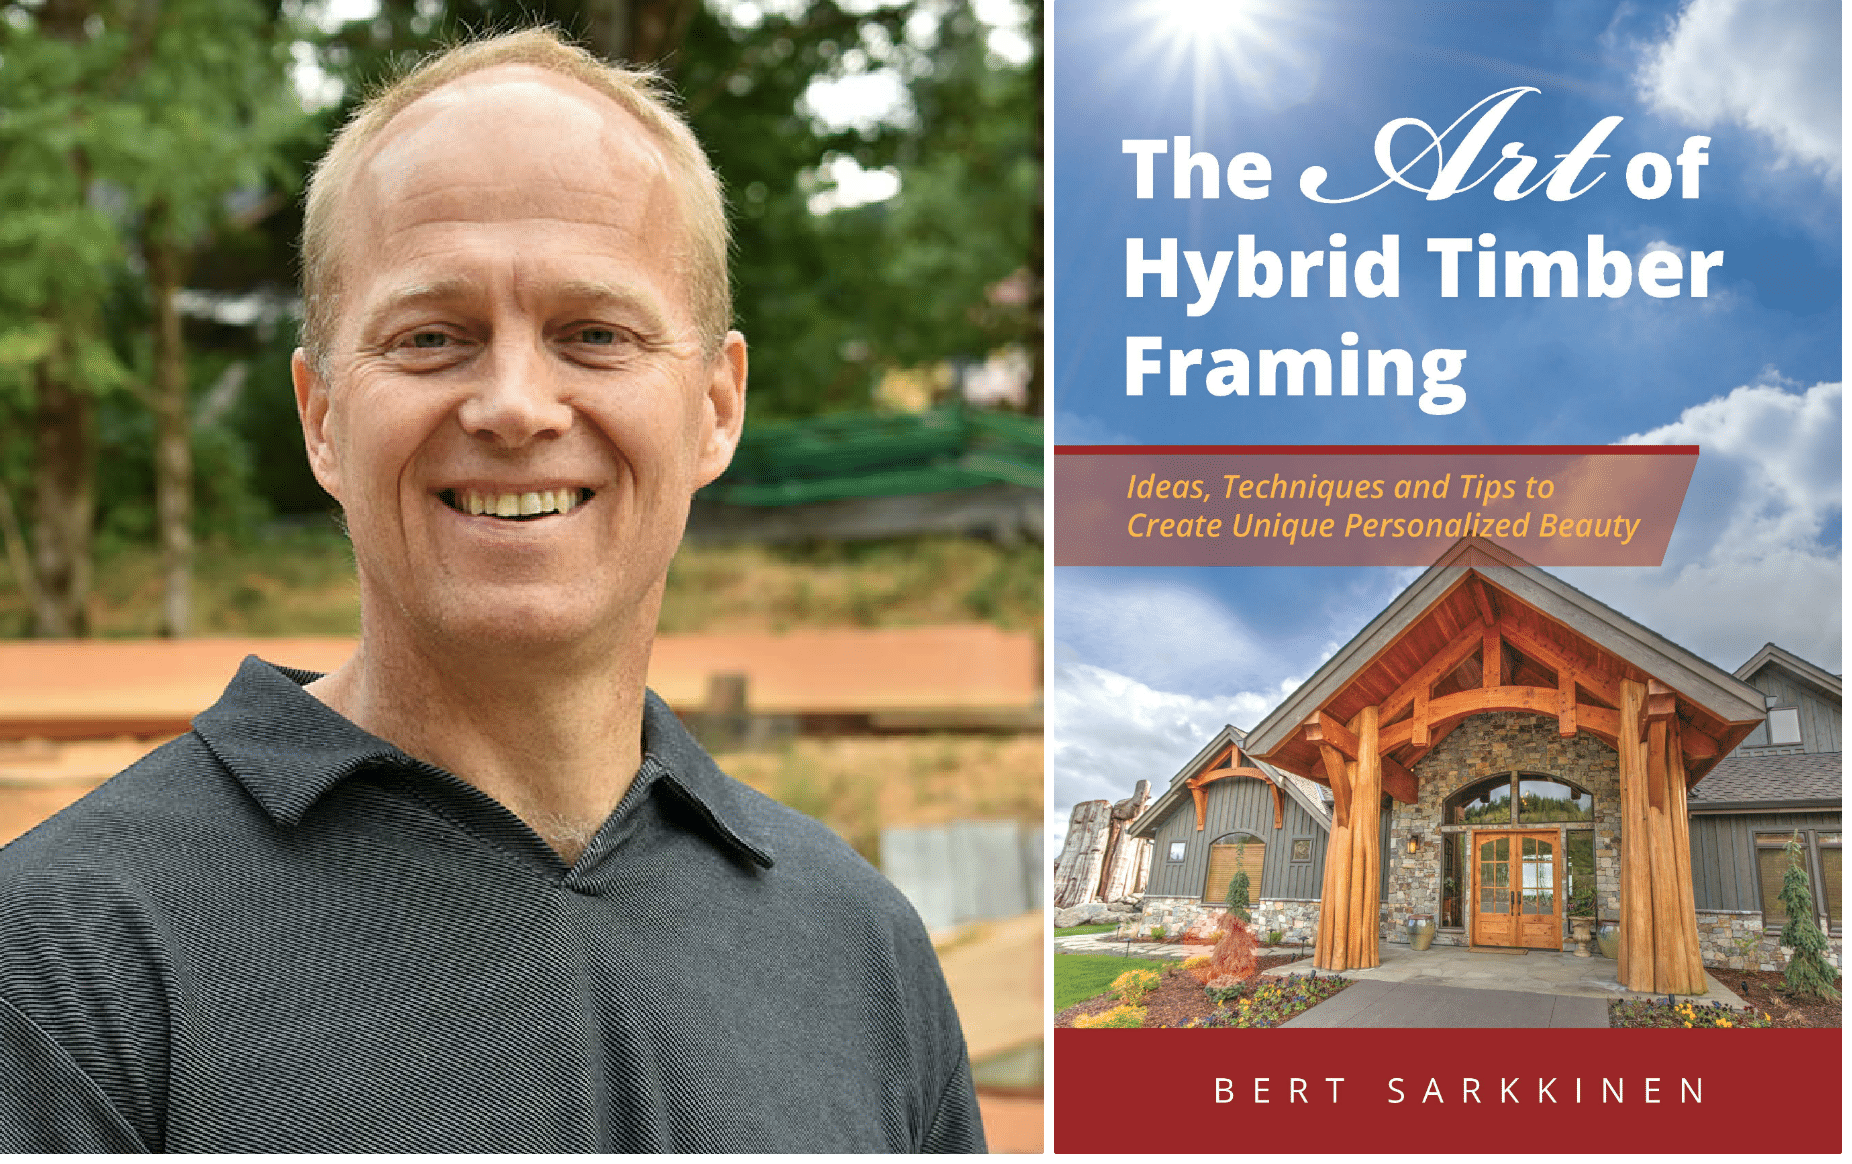 The Art of Hybrid Timber Framing - Book Written by Bert Sarkkinen